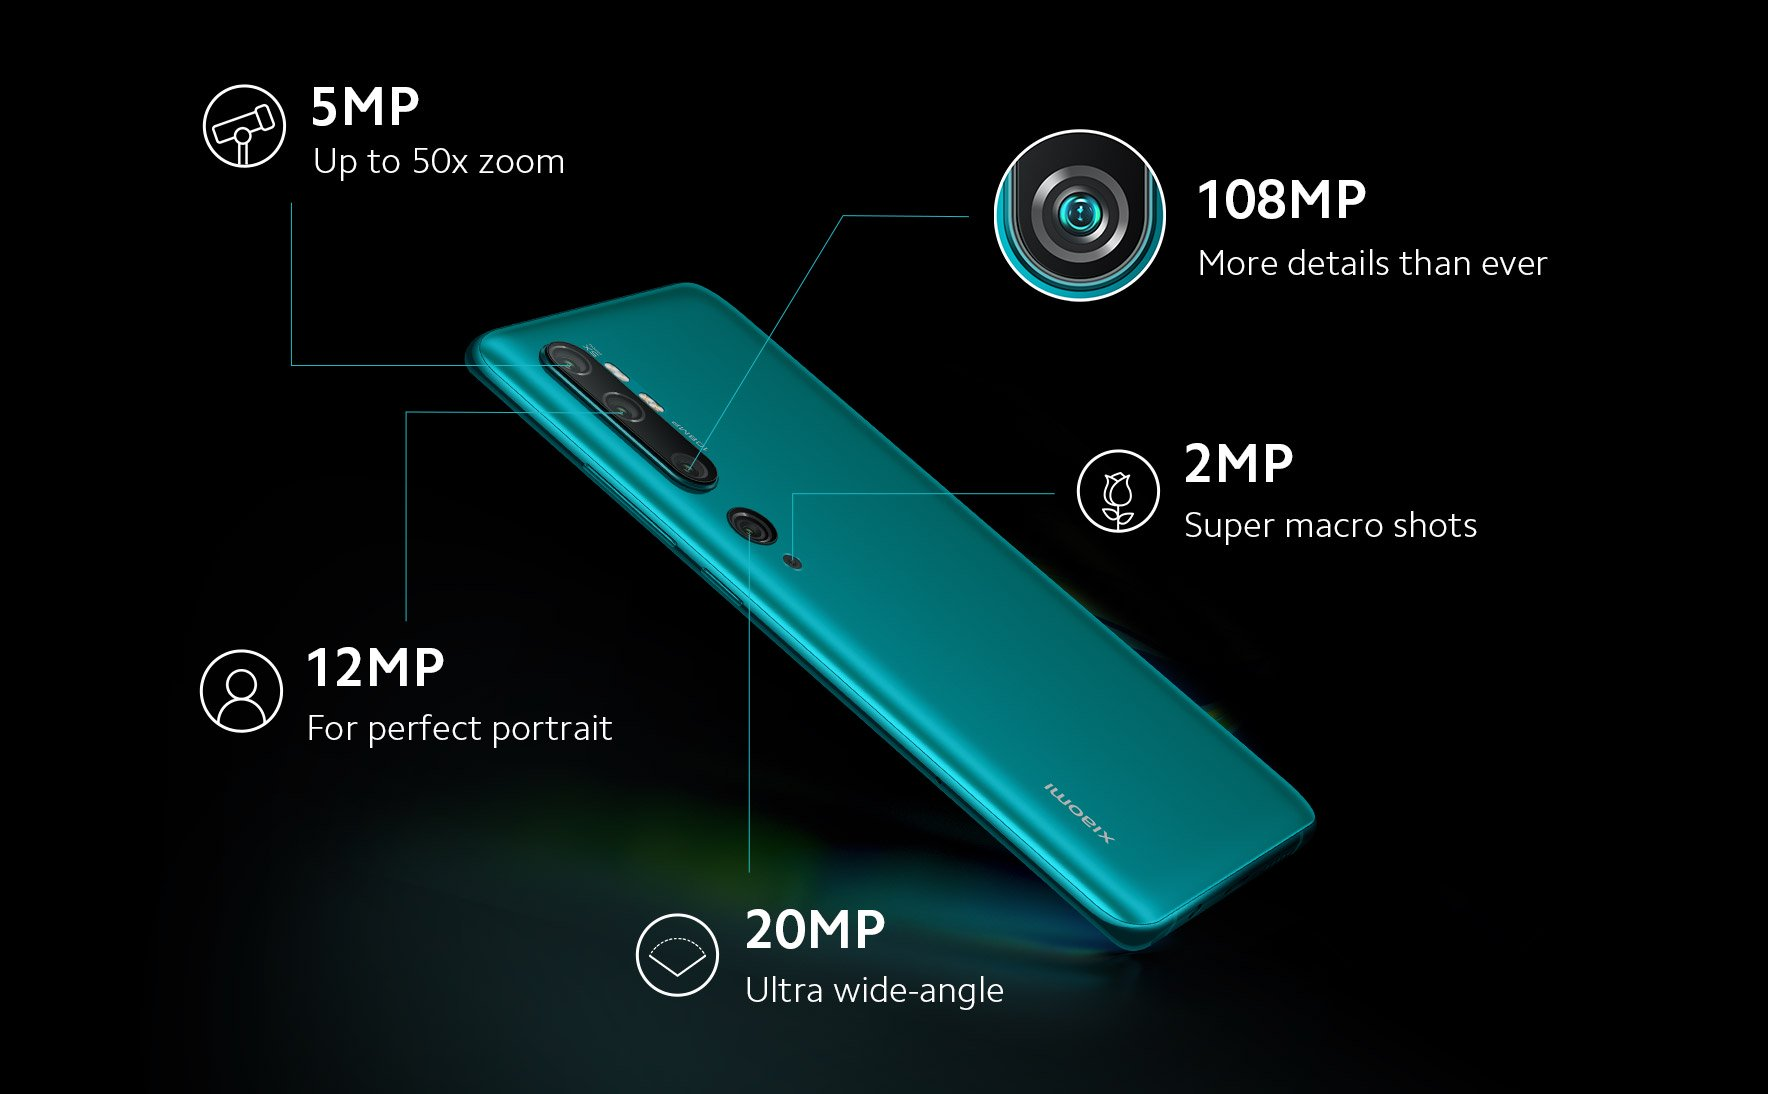 This is a Xiaomi Mi Note 10 with 5 cameras, 1 108MP sensor